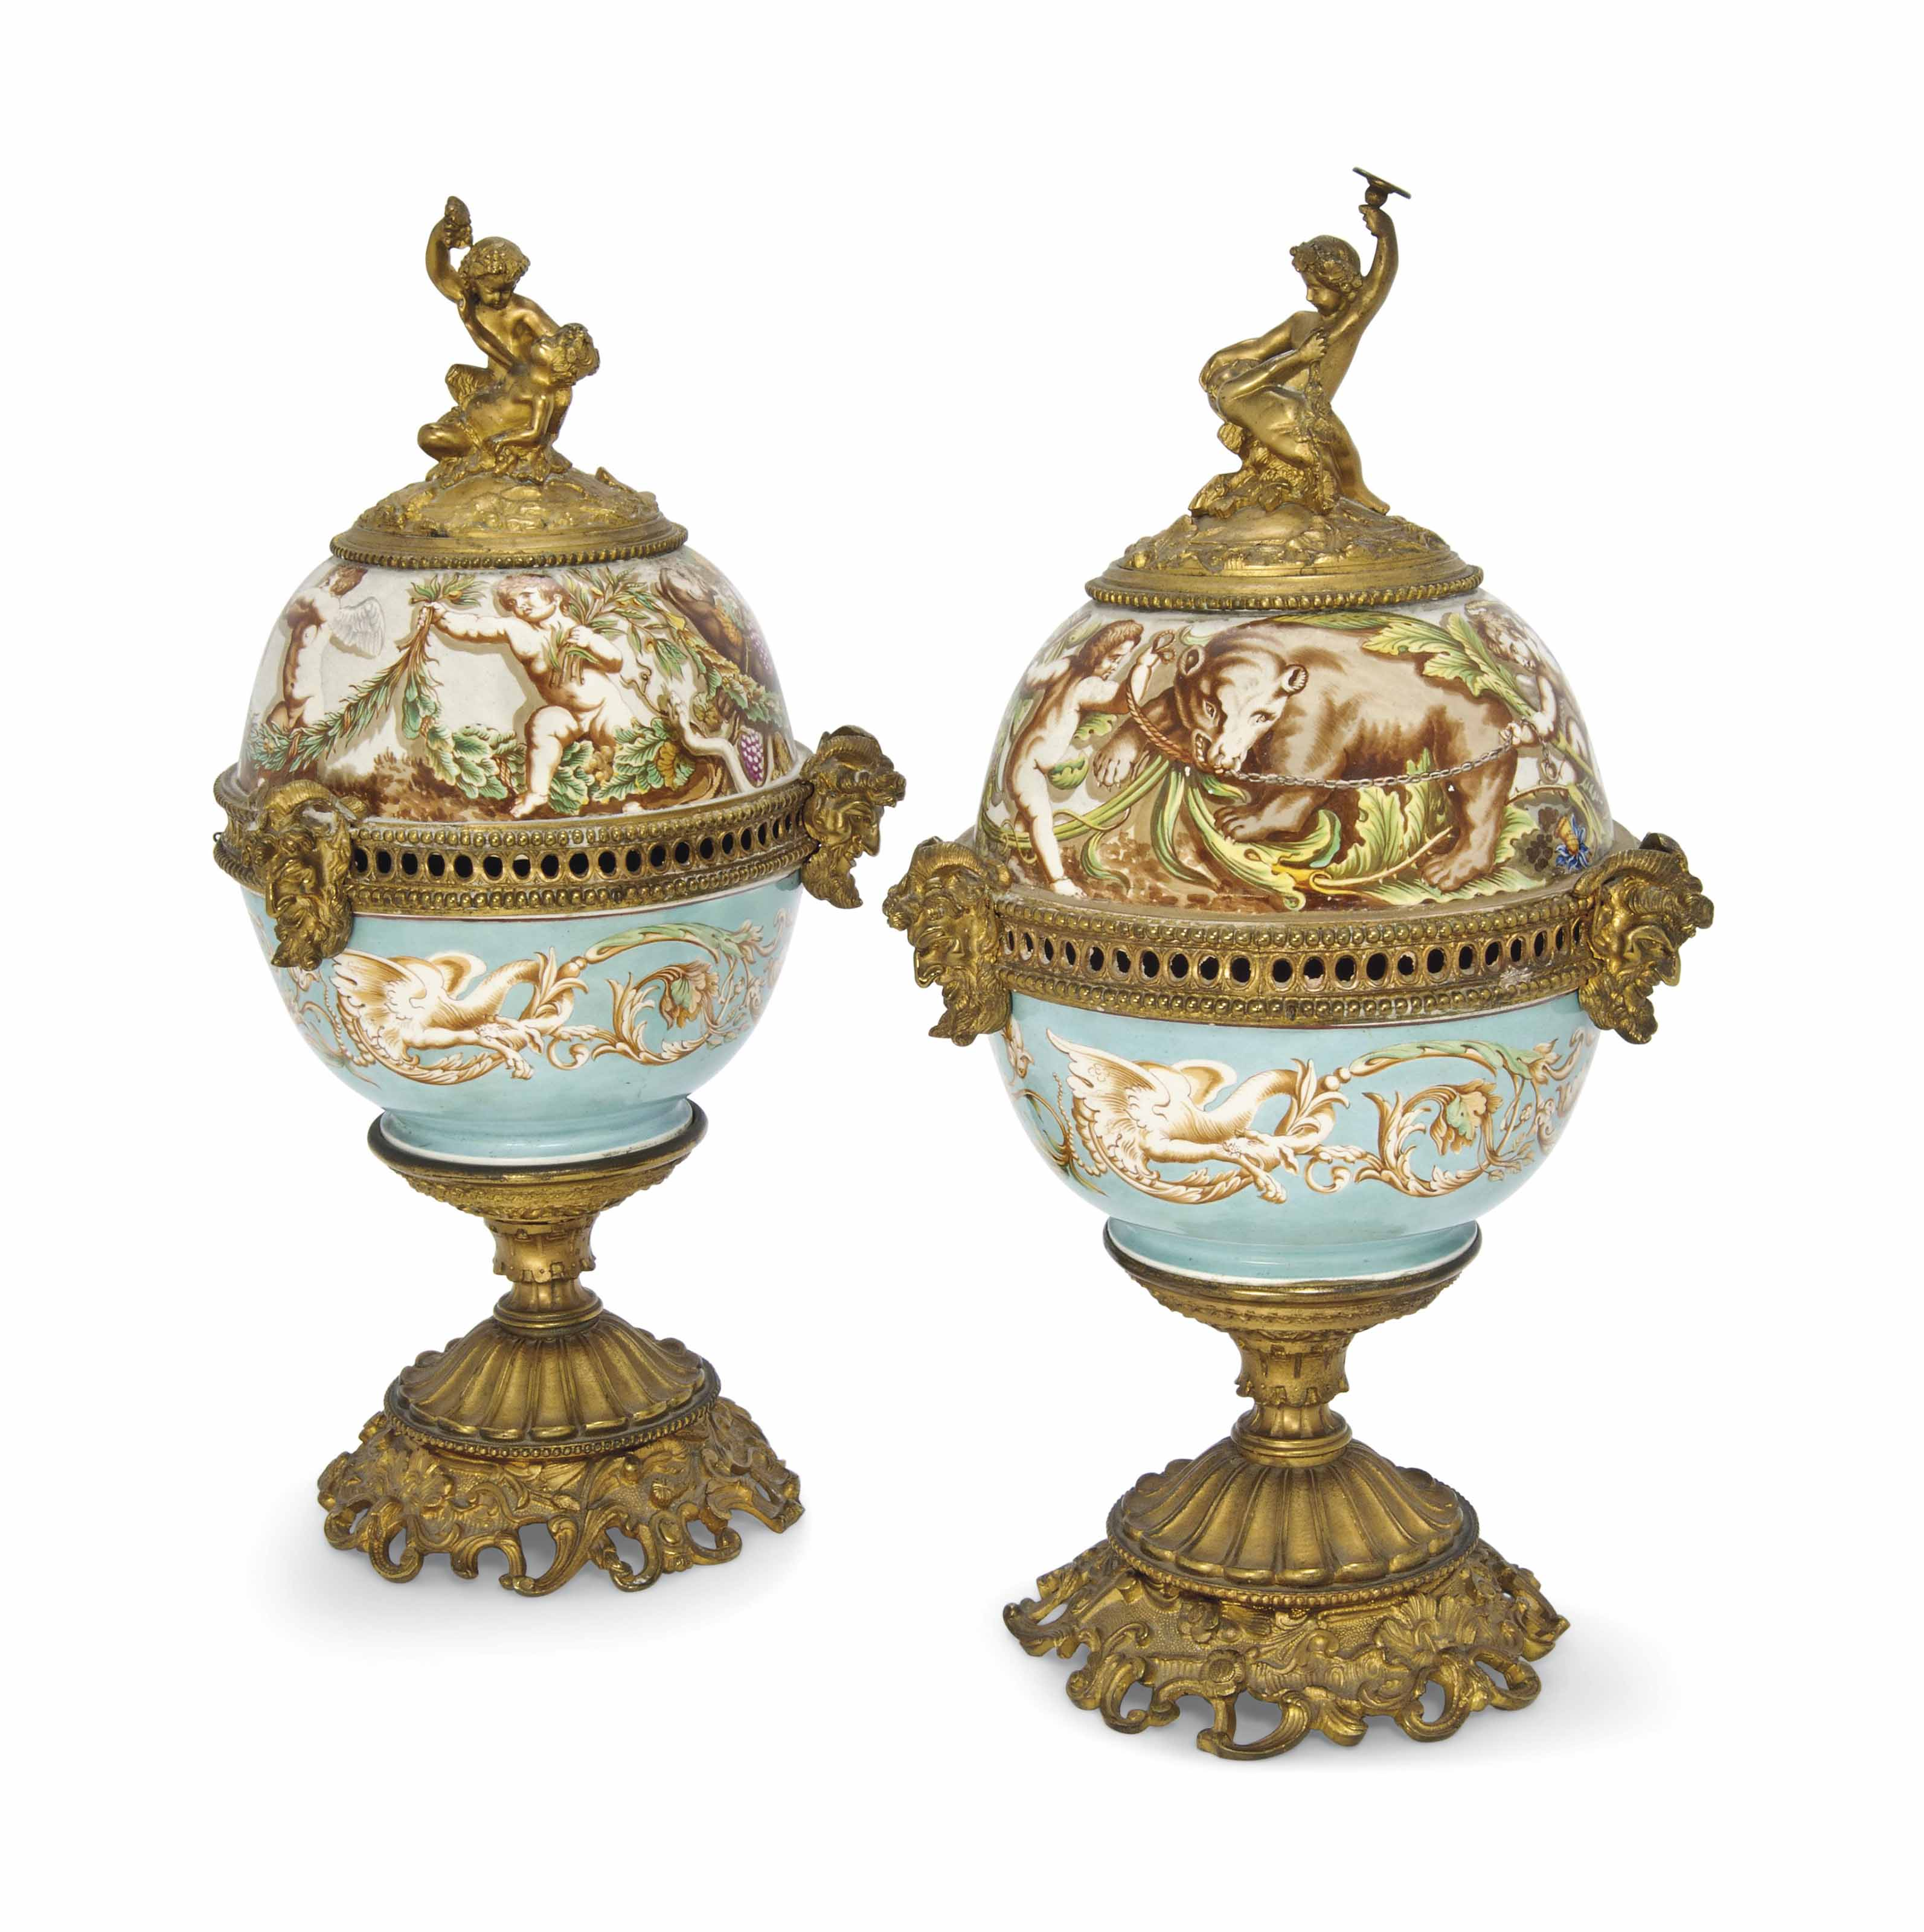 A PAIR OF CONTINENTAL PORCELAIN AND GILT-BRONZE MOUNTED URNS AND COVERS